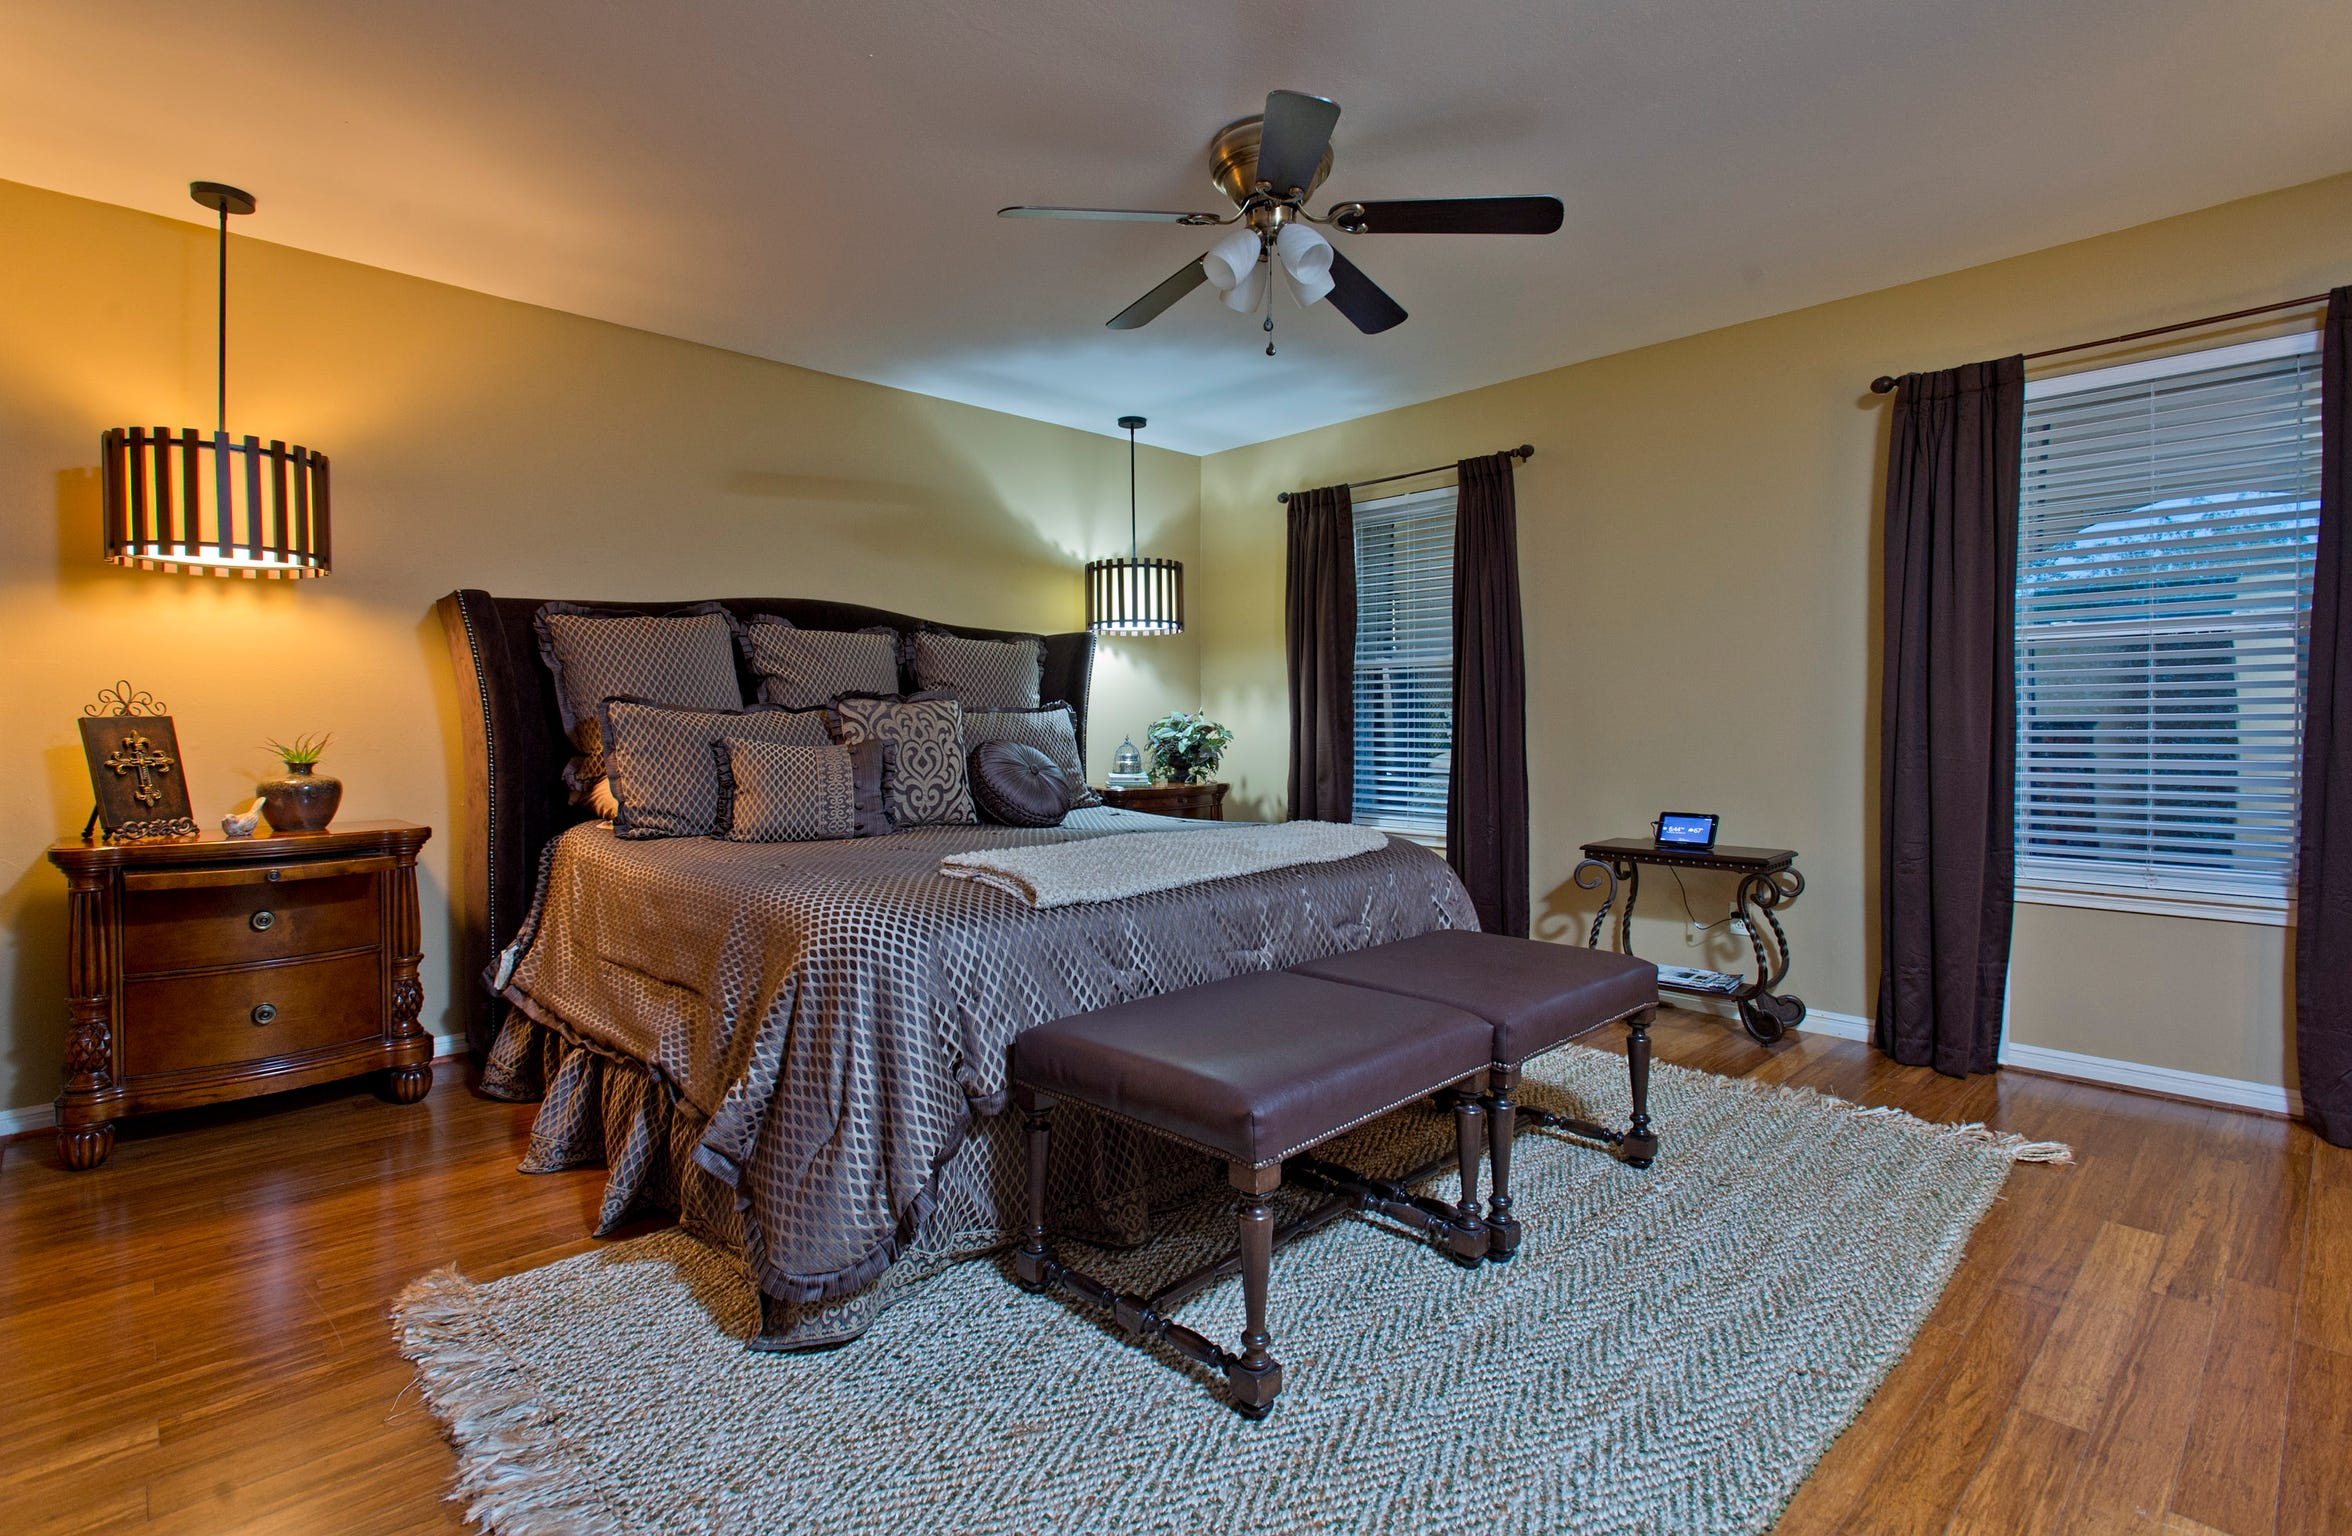 A spacious master bedroom features hardwood flooring, unique lighting and views of the grounds